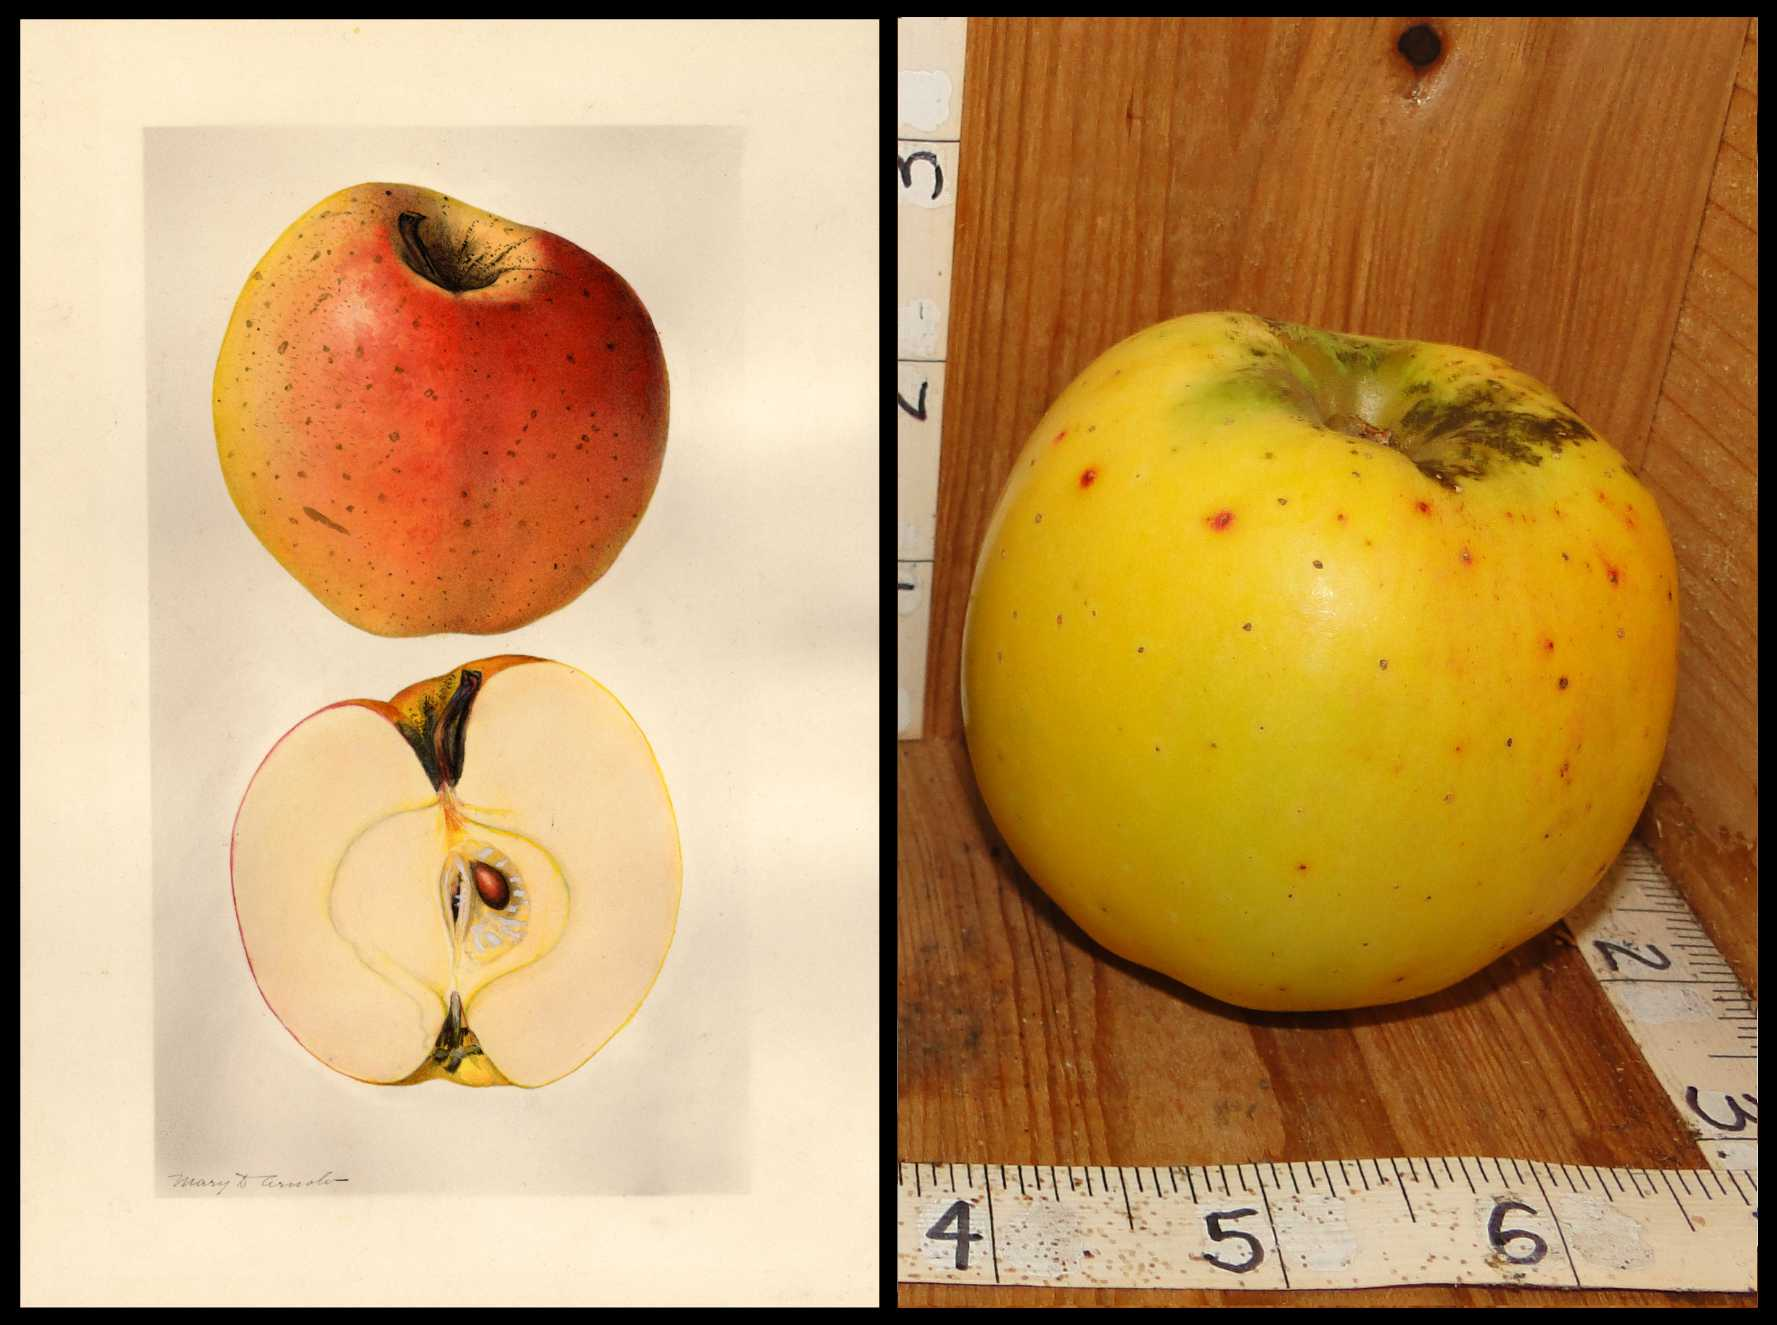 yellow apple with medium sized red spots